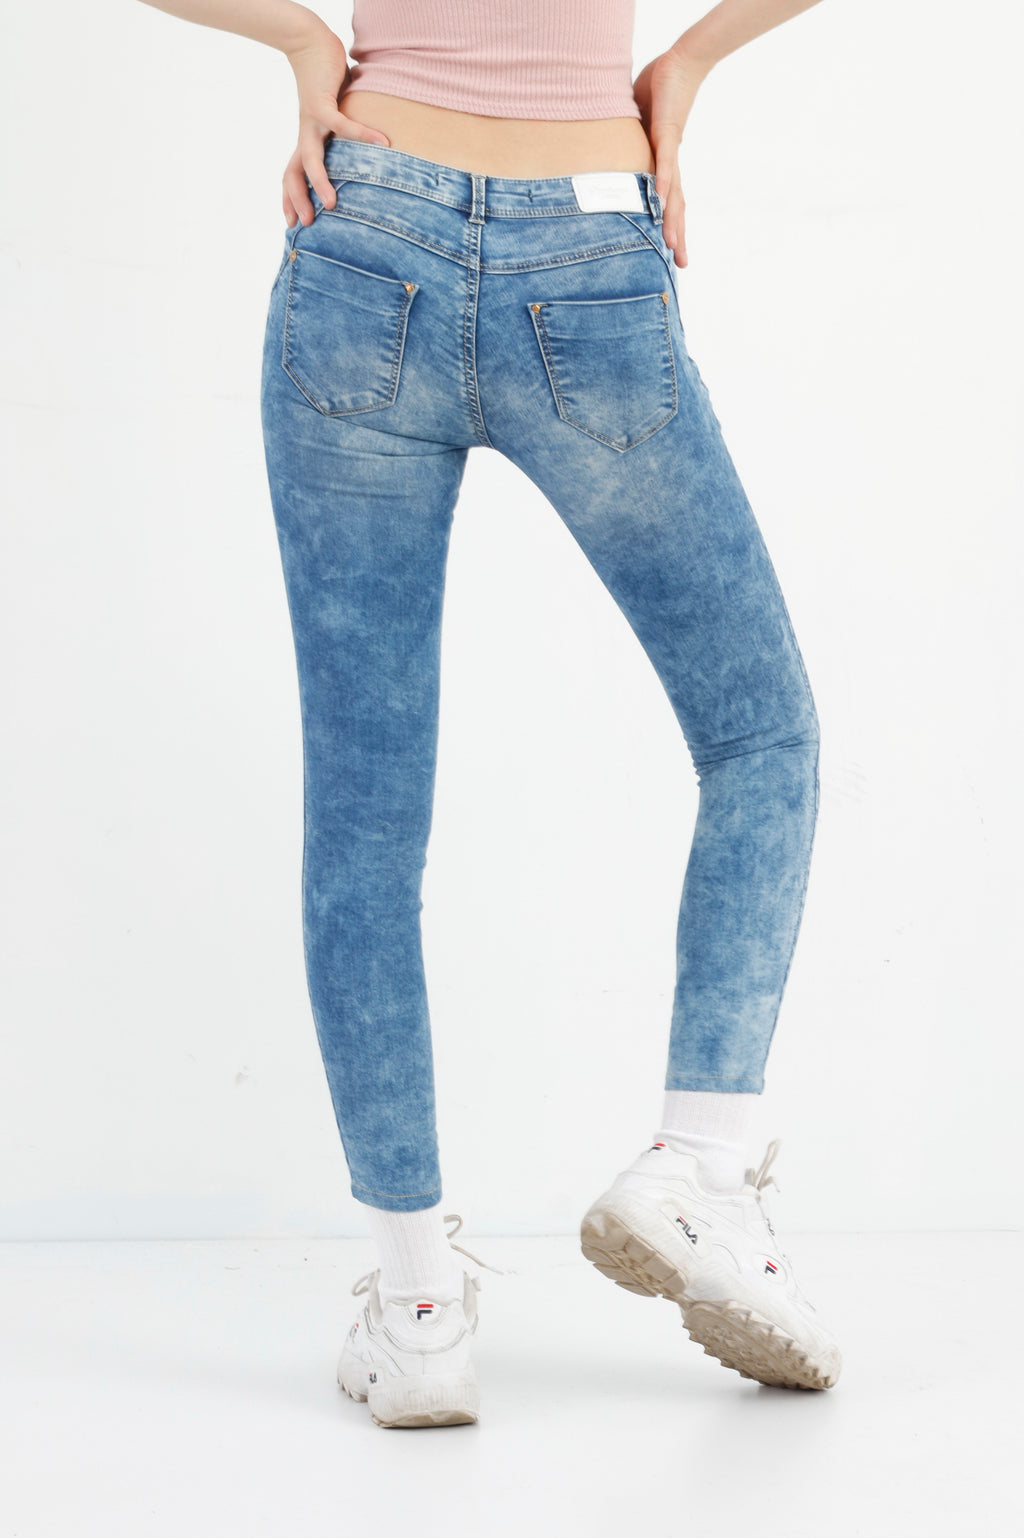 Stradivarius Women 34 XS Skinny Jeans Discoloration Blue Cotton A2491